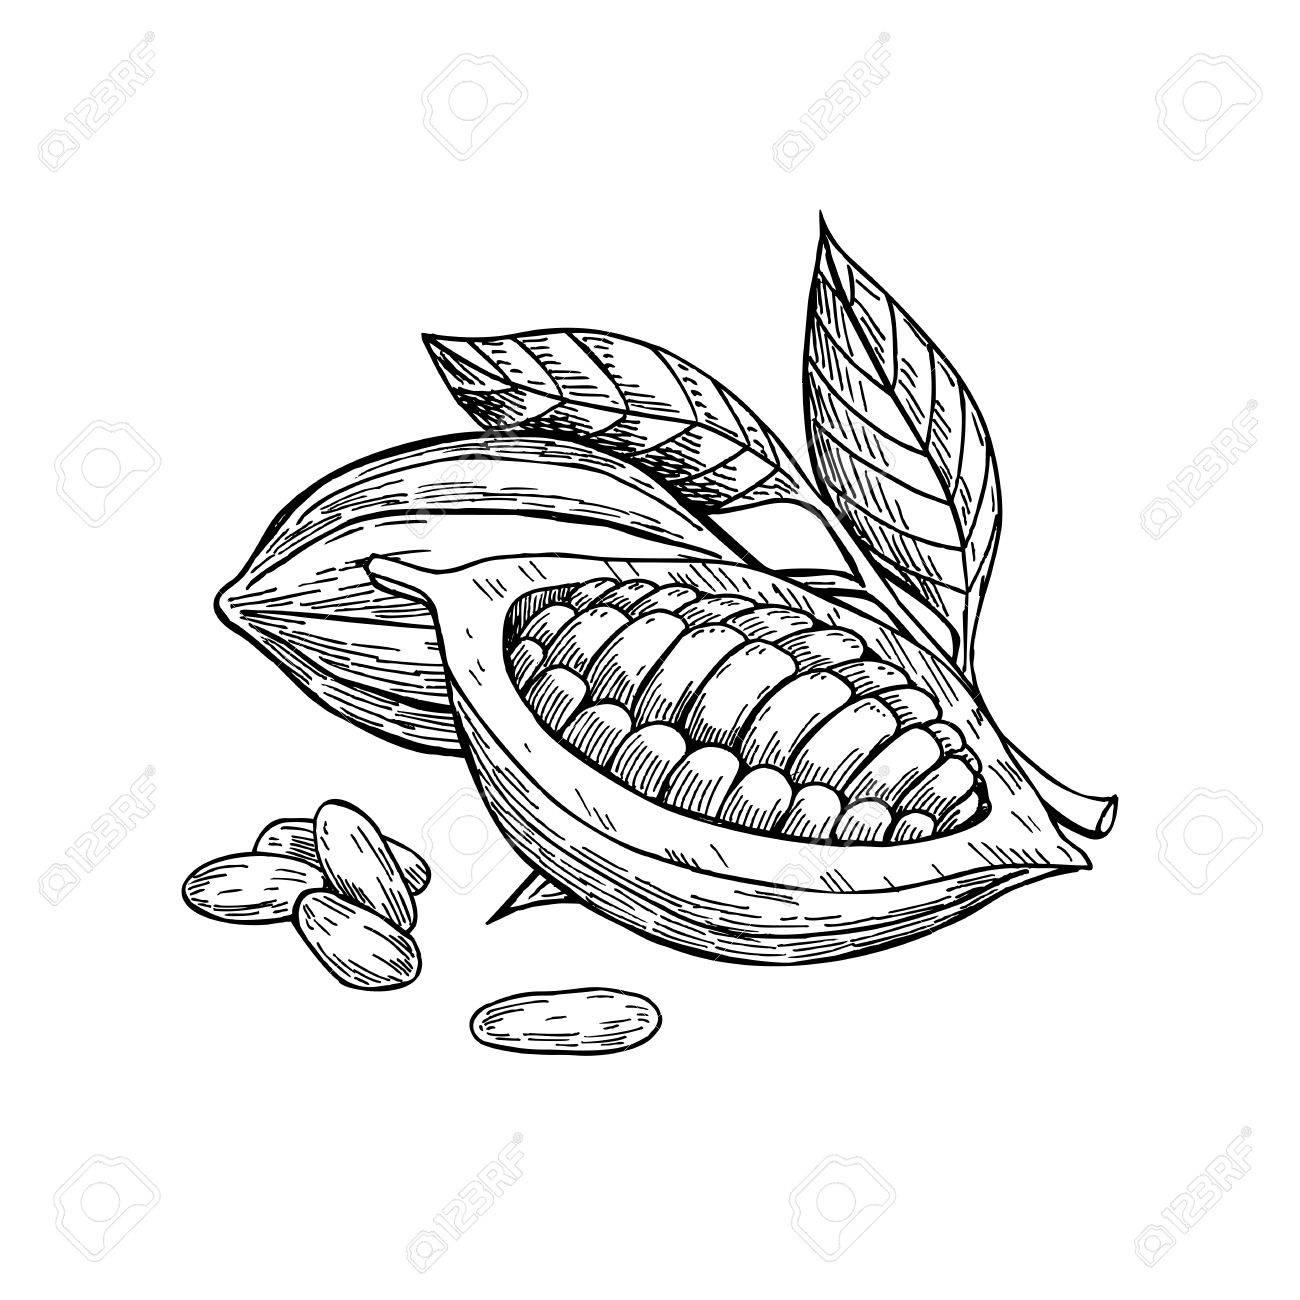 Cocoa vector superfood drawing set. Isolated hand drawn illustration on white background. Organic healthy food. Great for banner, poster, label - 62264007